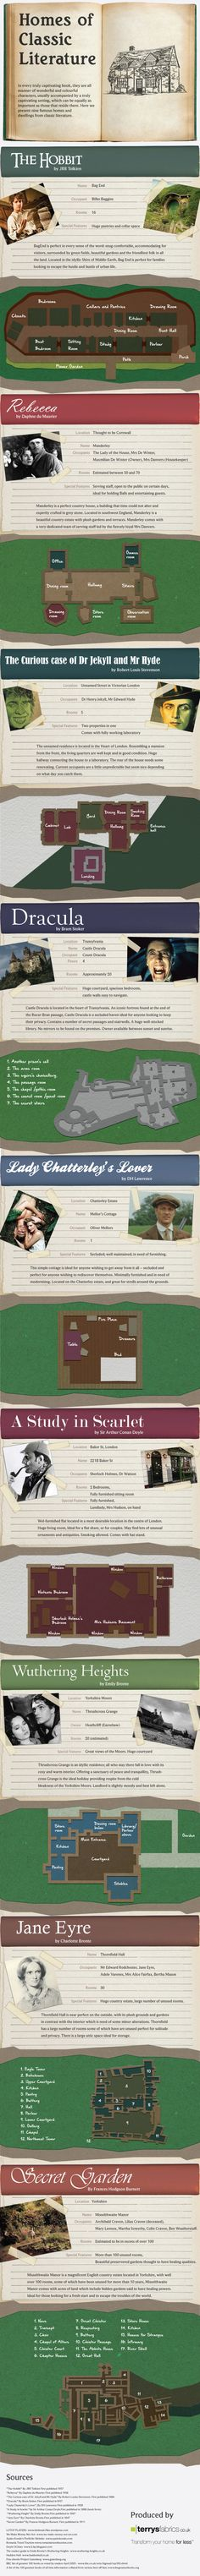 9 Layouts Of Famous Houses From Classic Literature